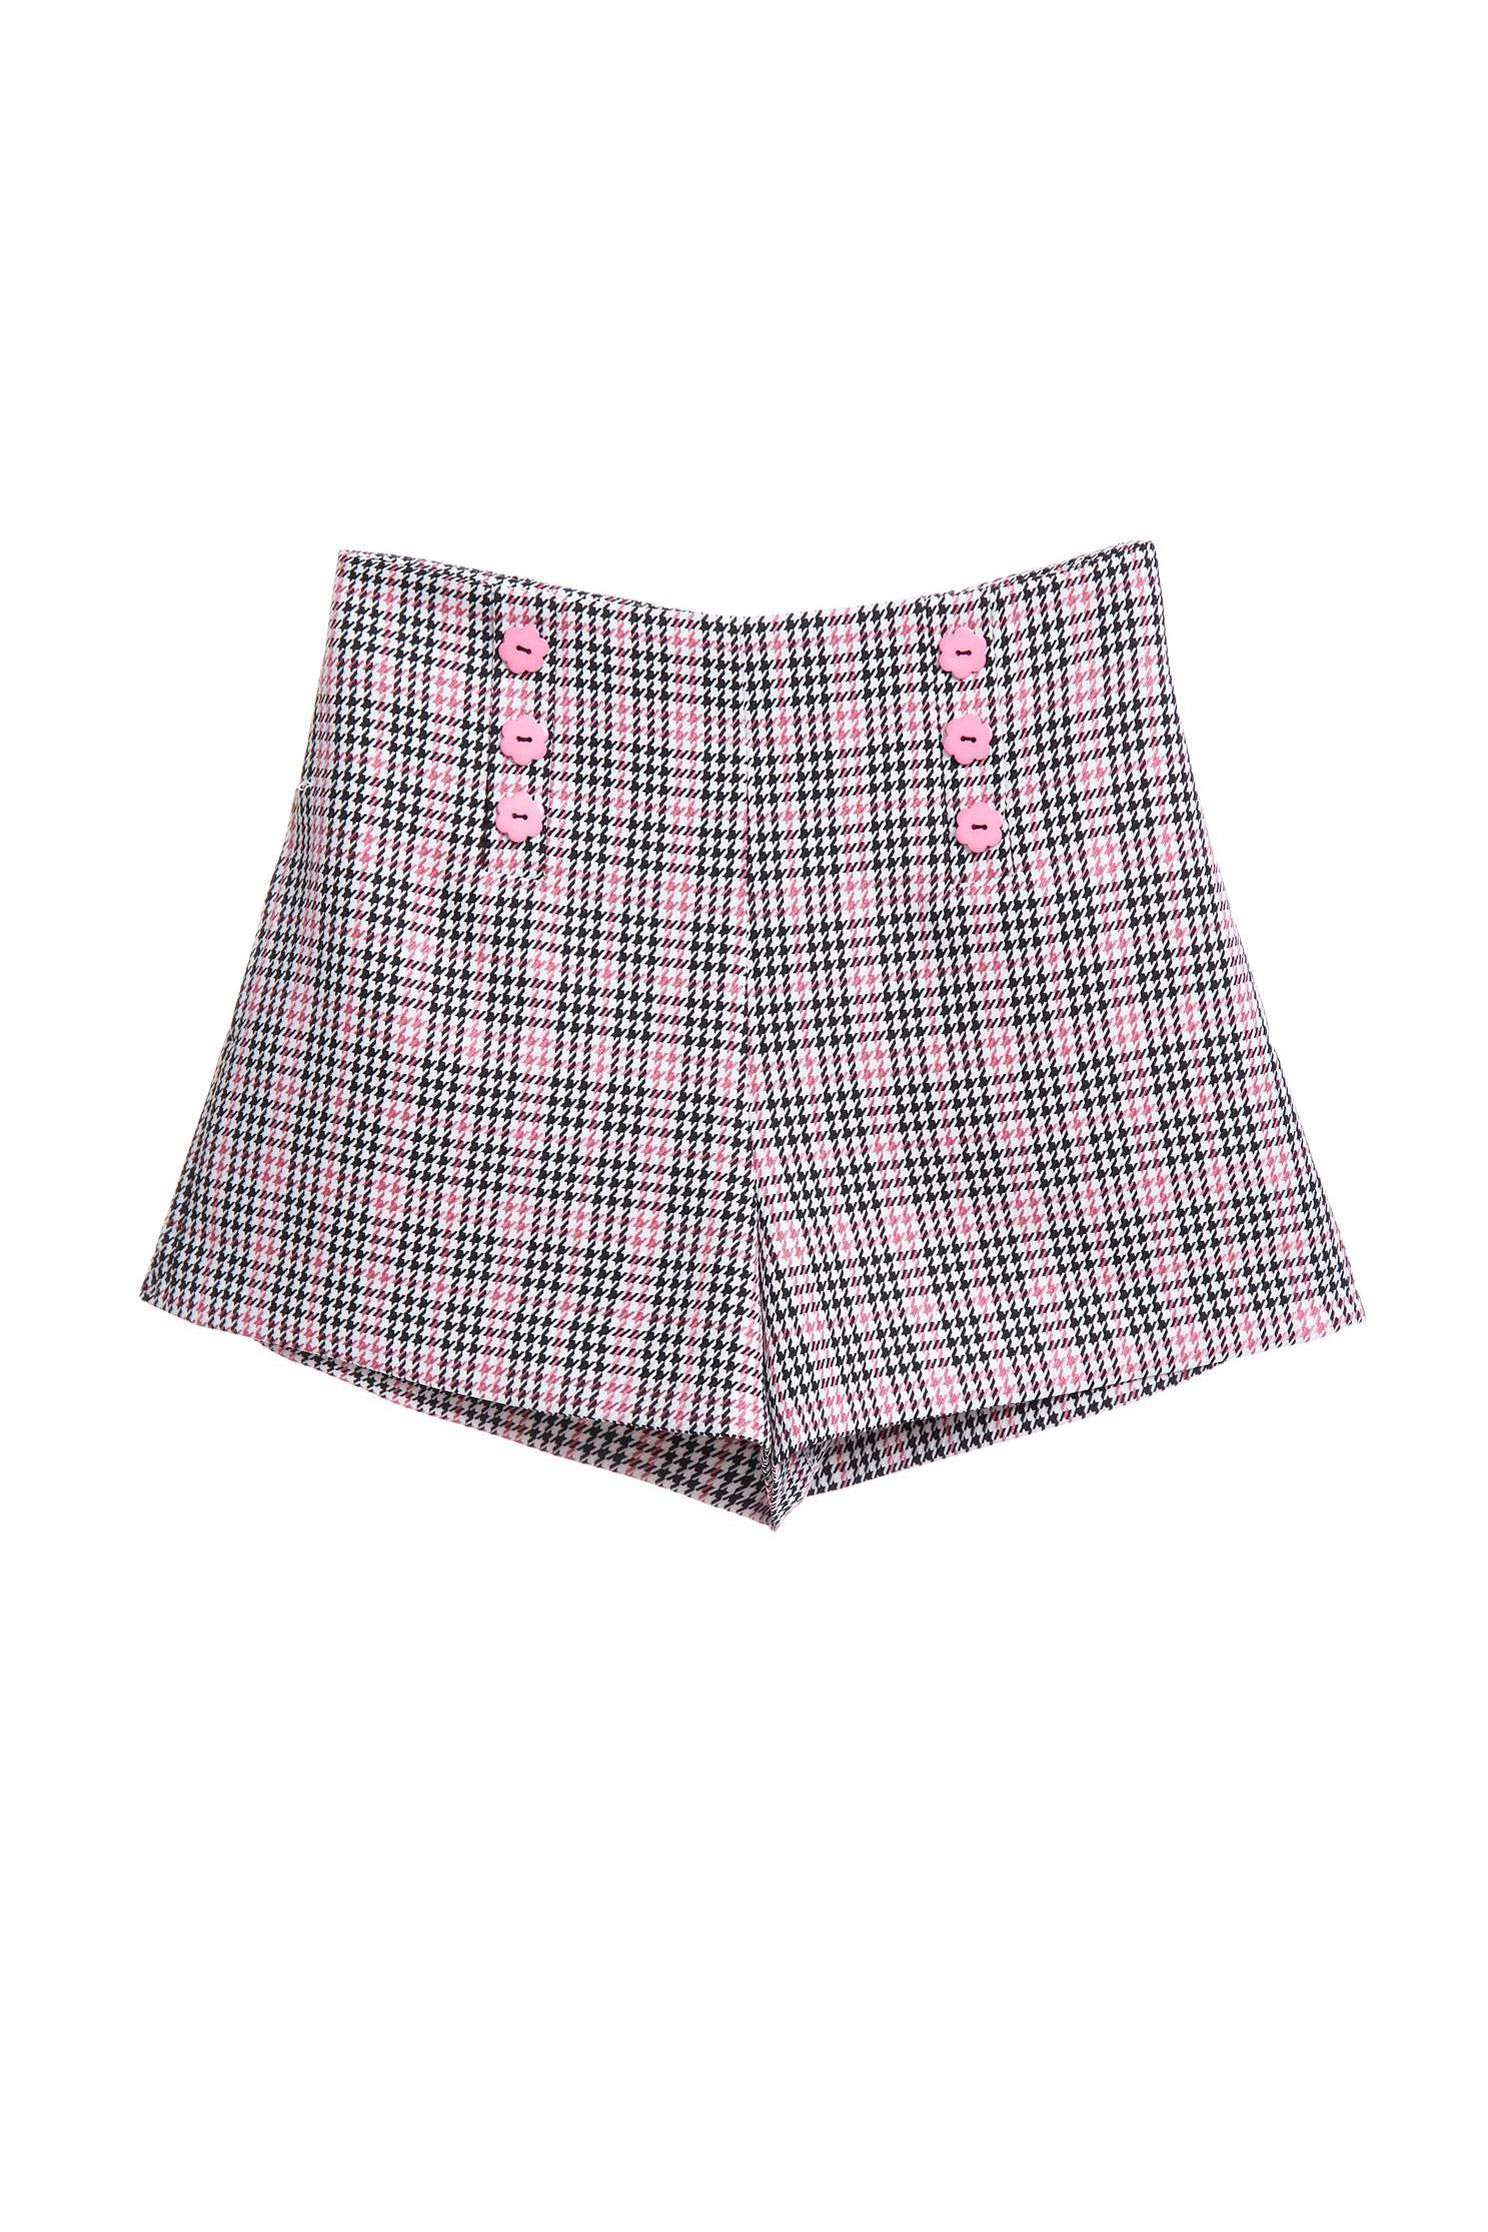 Plaid design shorts,shorts,pants